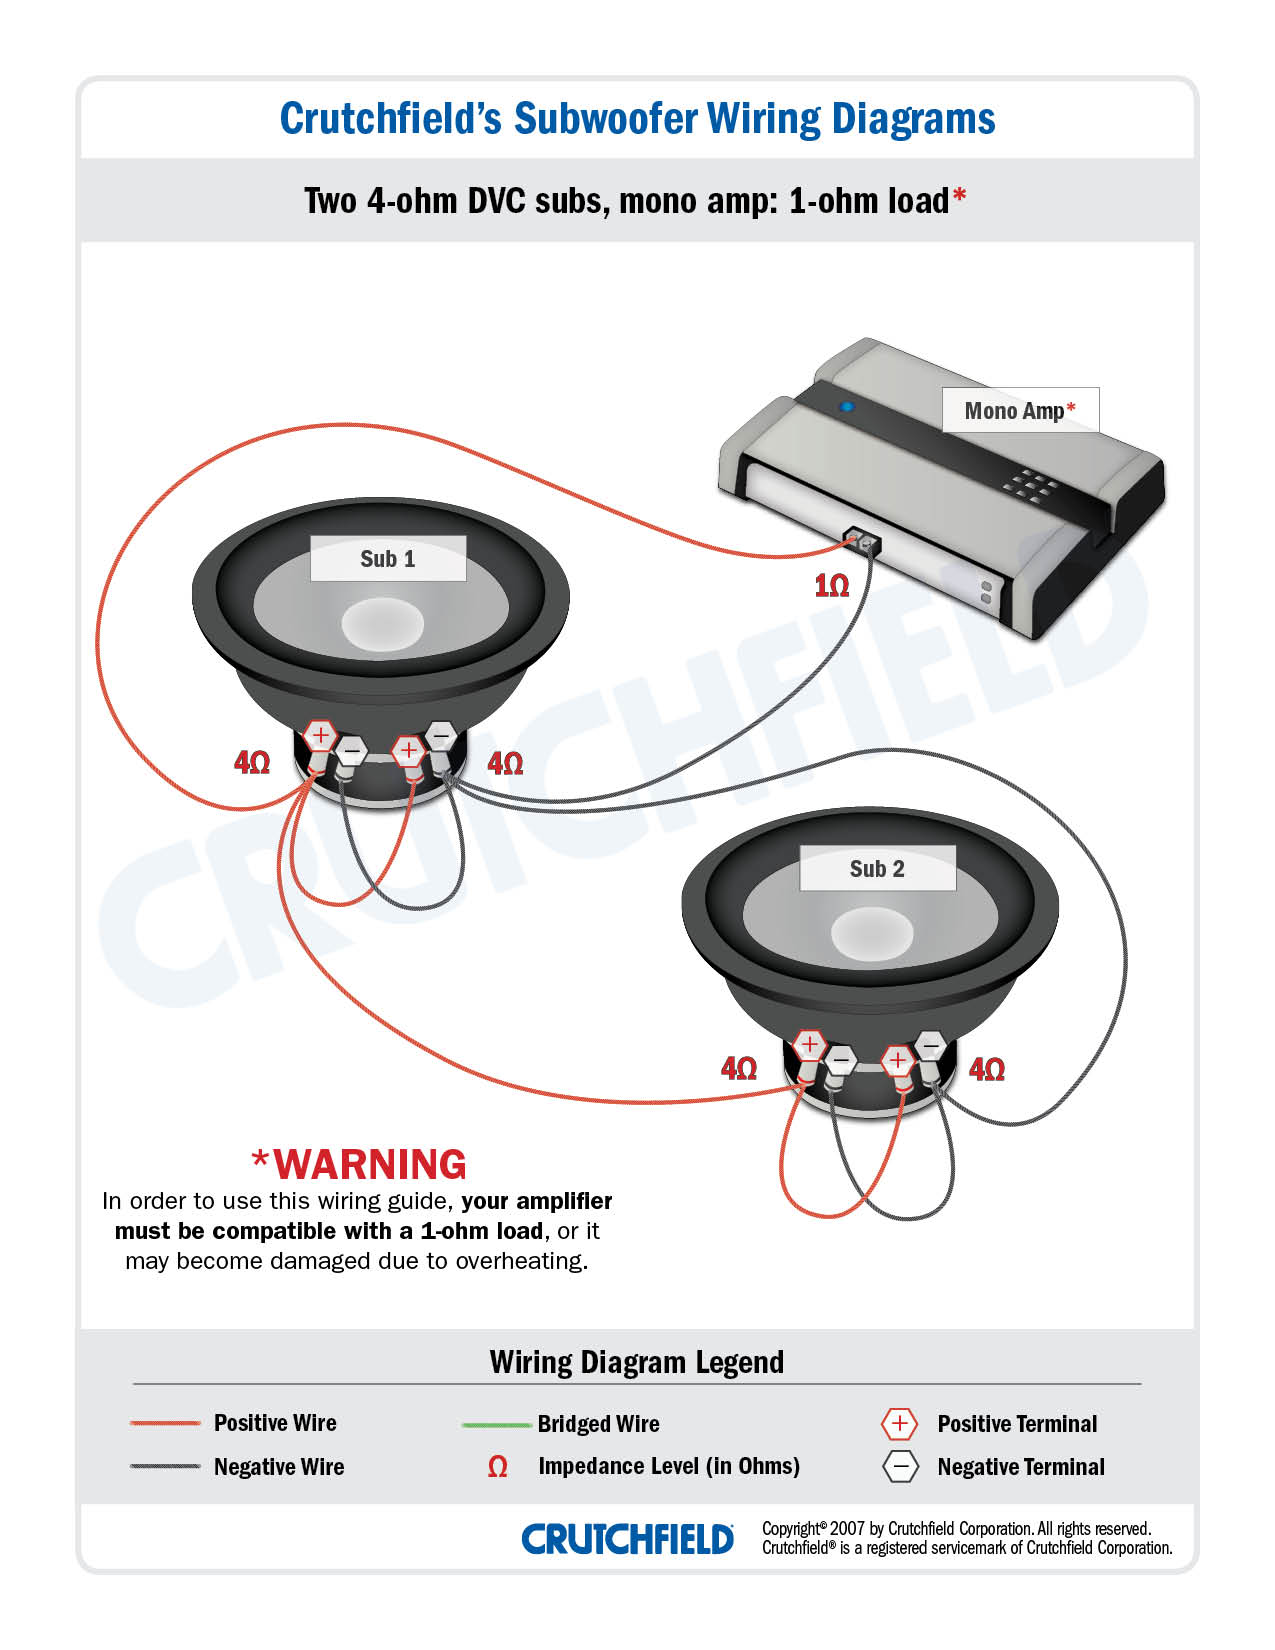 subwoofer wiring diagrams how to wire your subs wiring diagram subwoofer amplifier in your case, the 4 ohm wiring scheme is the only safe way to connect that gear together